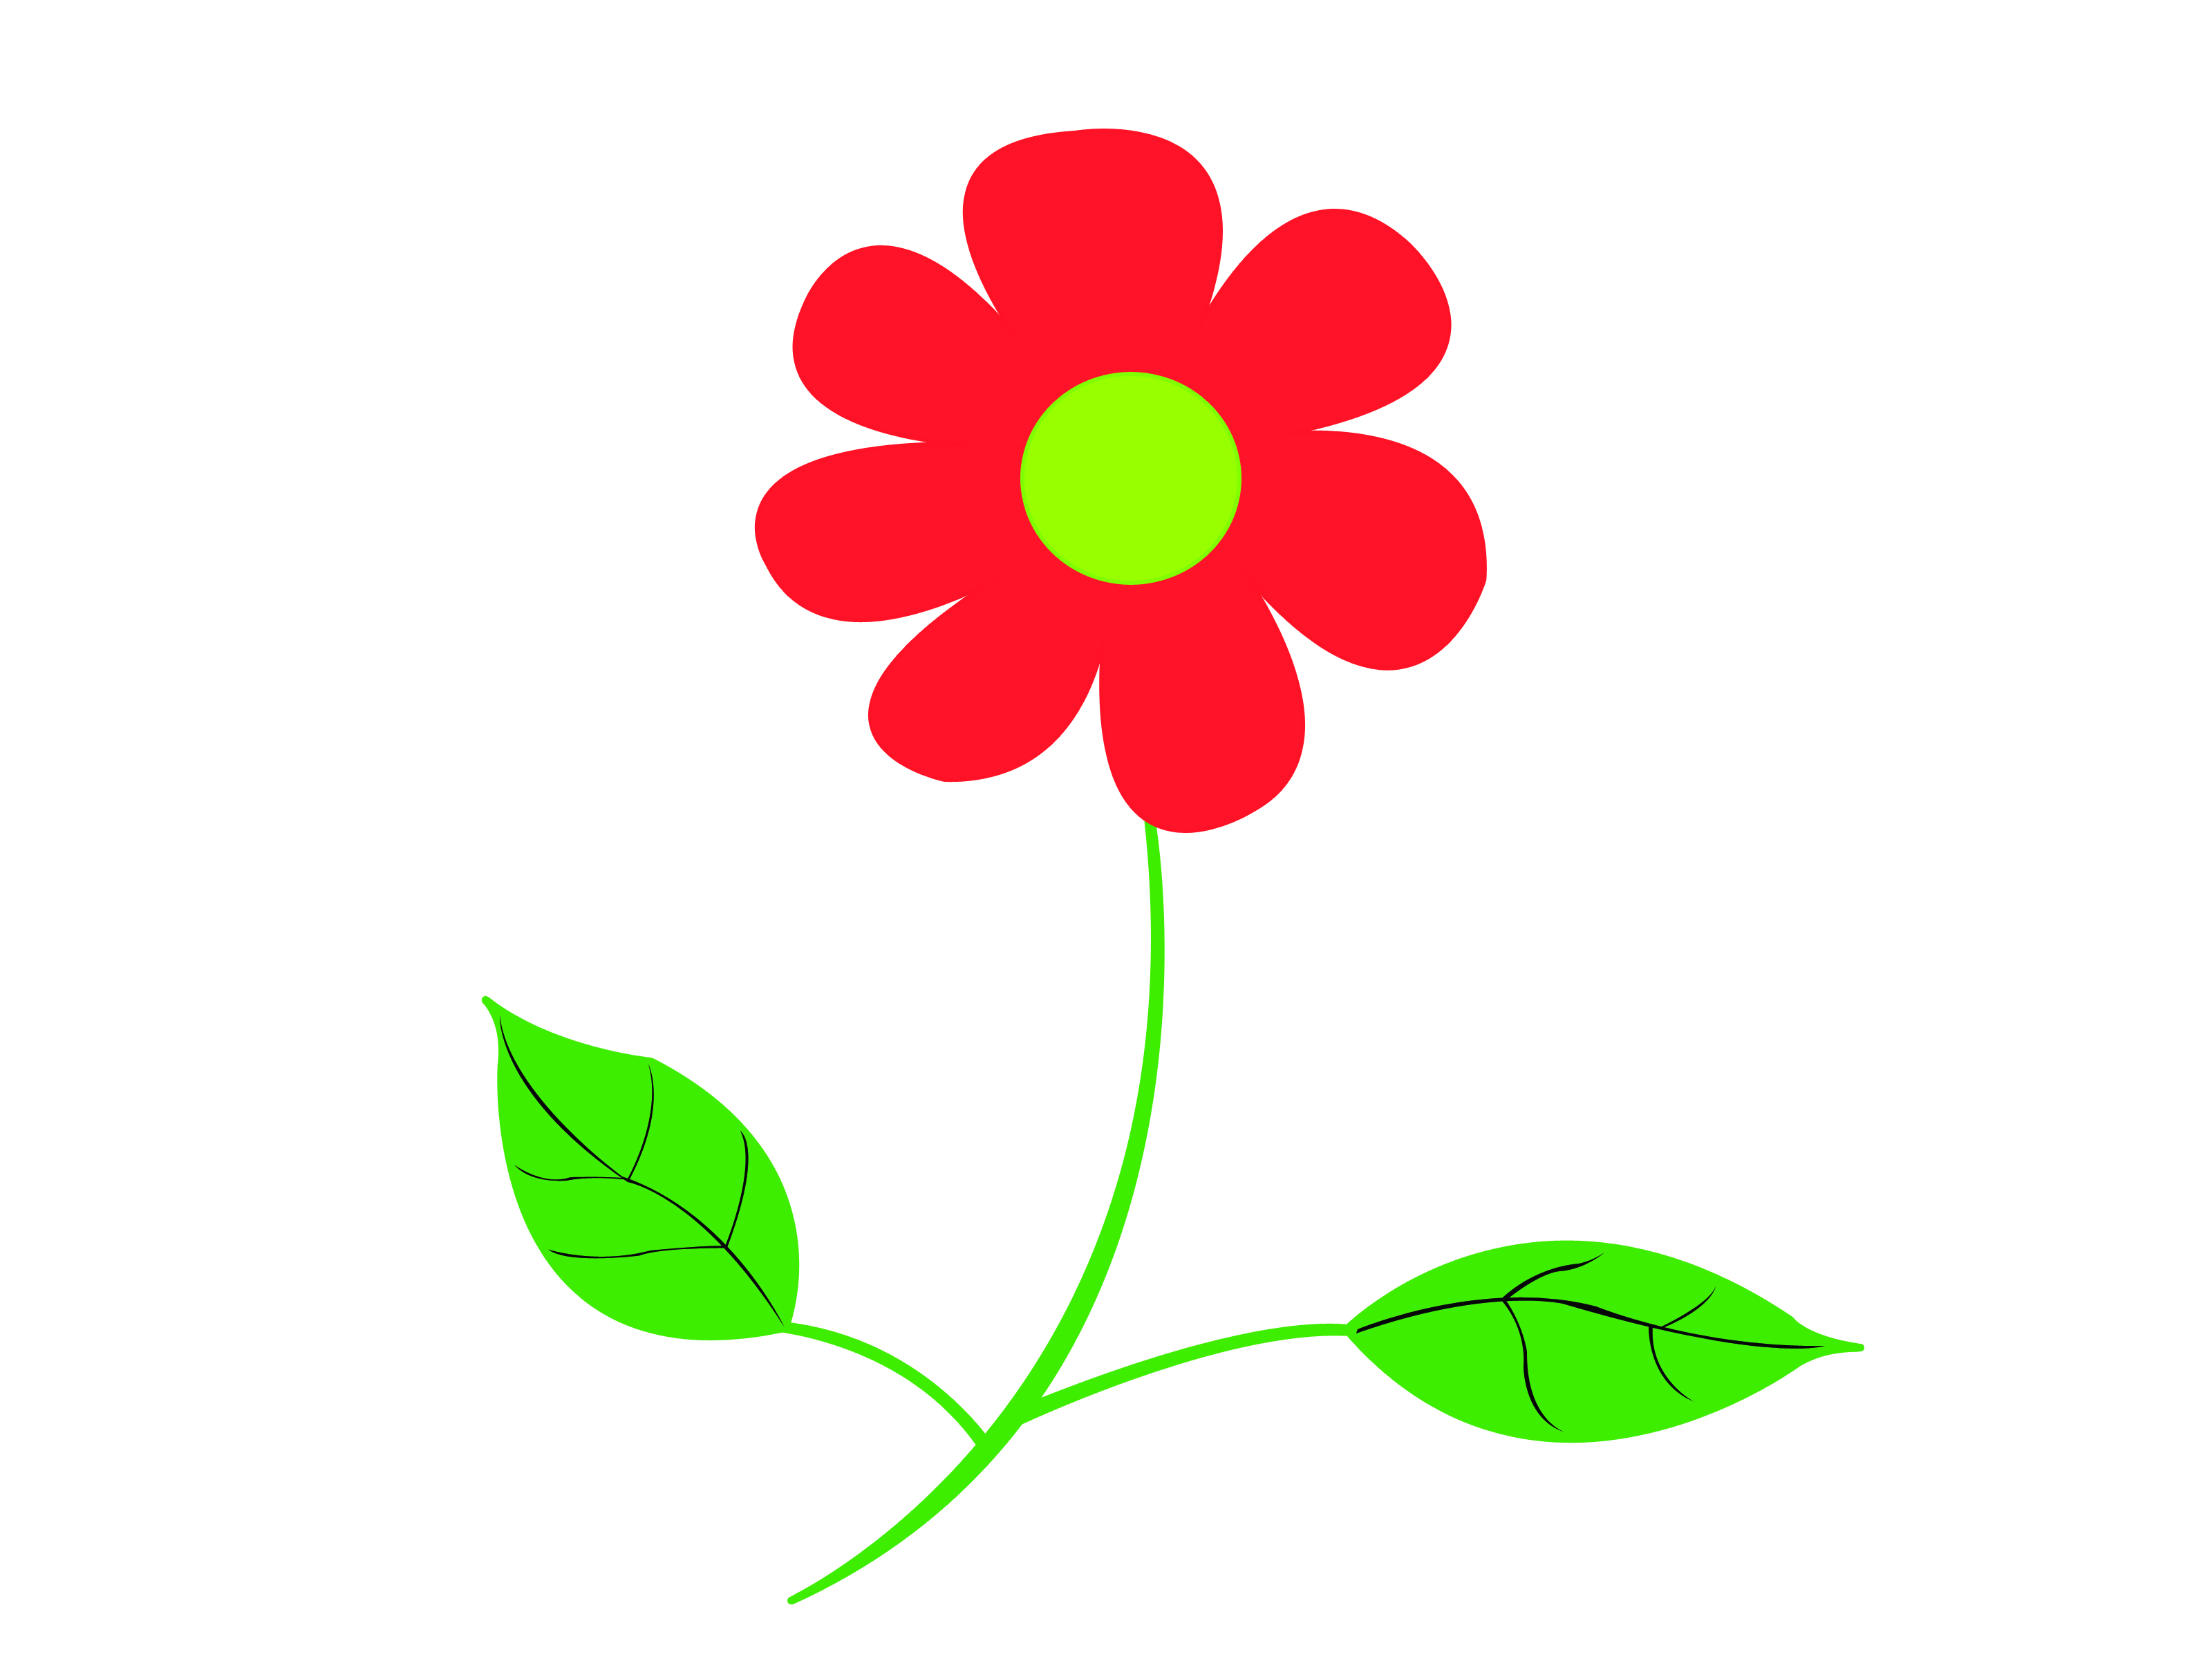 Red Flower Drawing at GetDrawings.com | Free for personal use Red ...